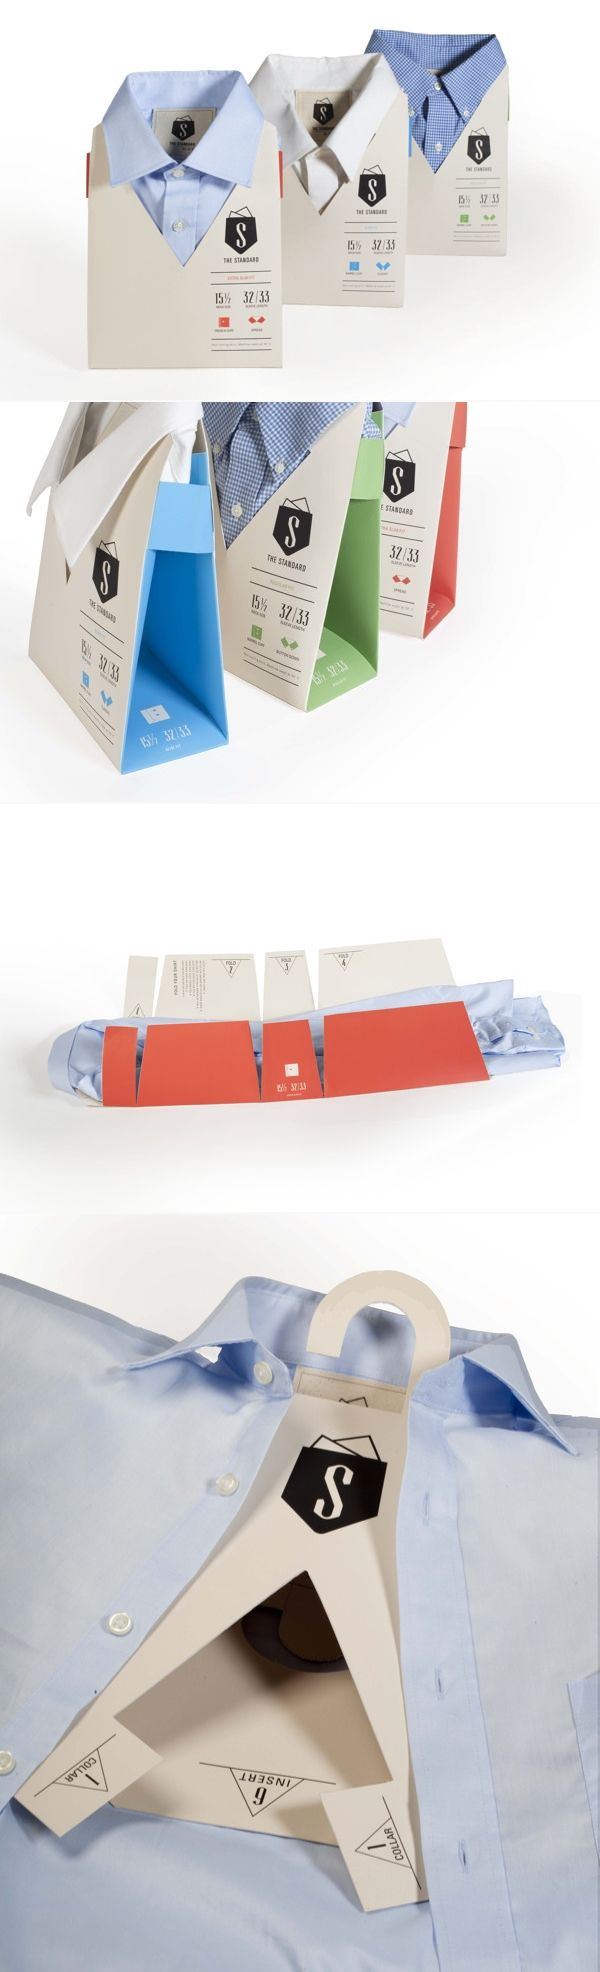 Standard Dress Shirt - eliminating excess packaging / by Jille Natalino, Elizabeth Kelley, Rob Hurst, Joanna Milewski, via Behance. Very cool #packaging #design PD